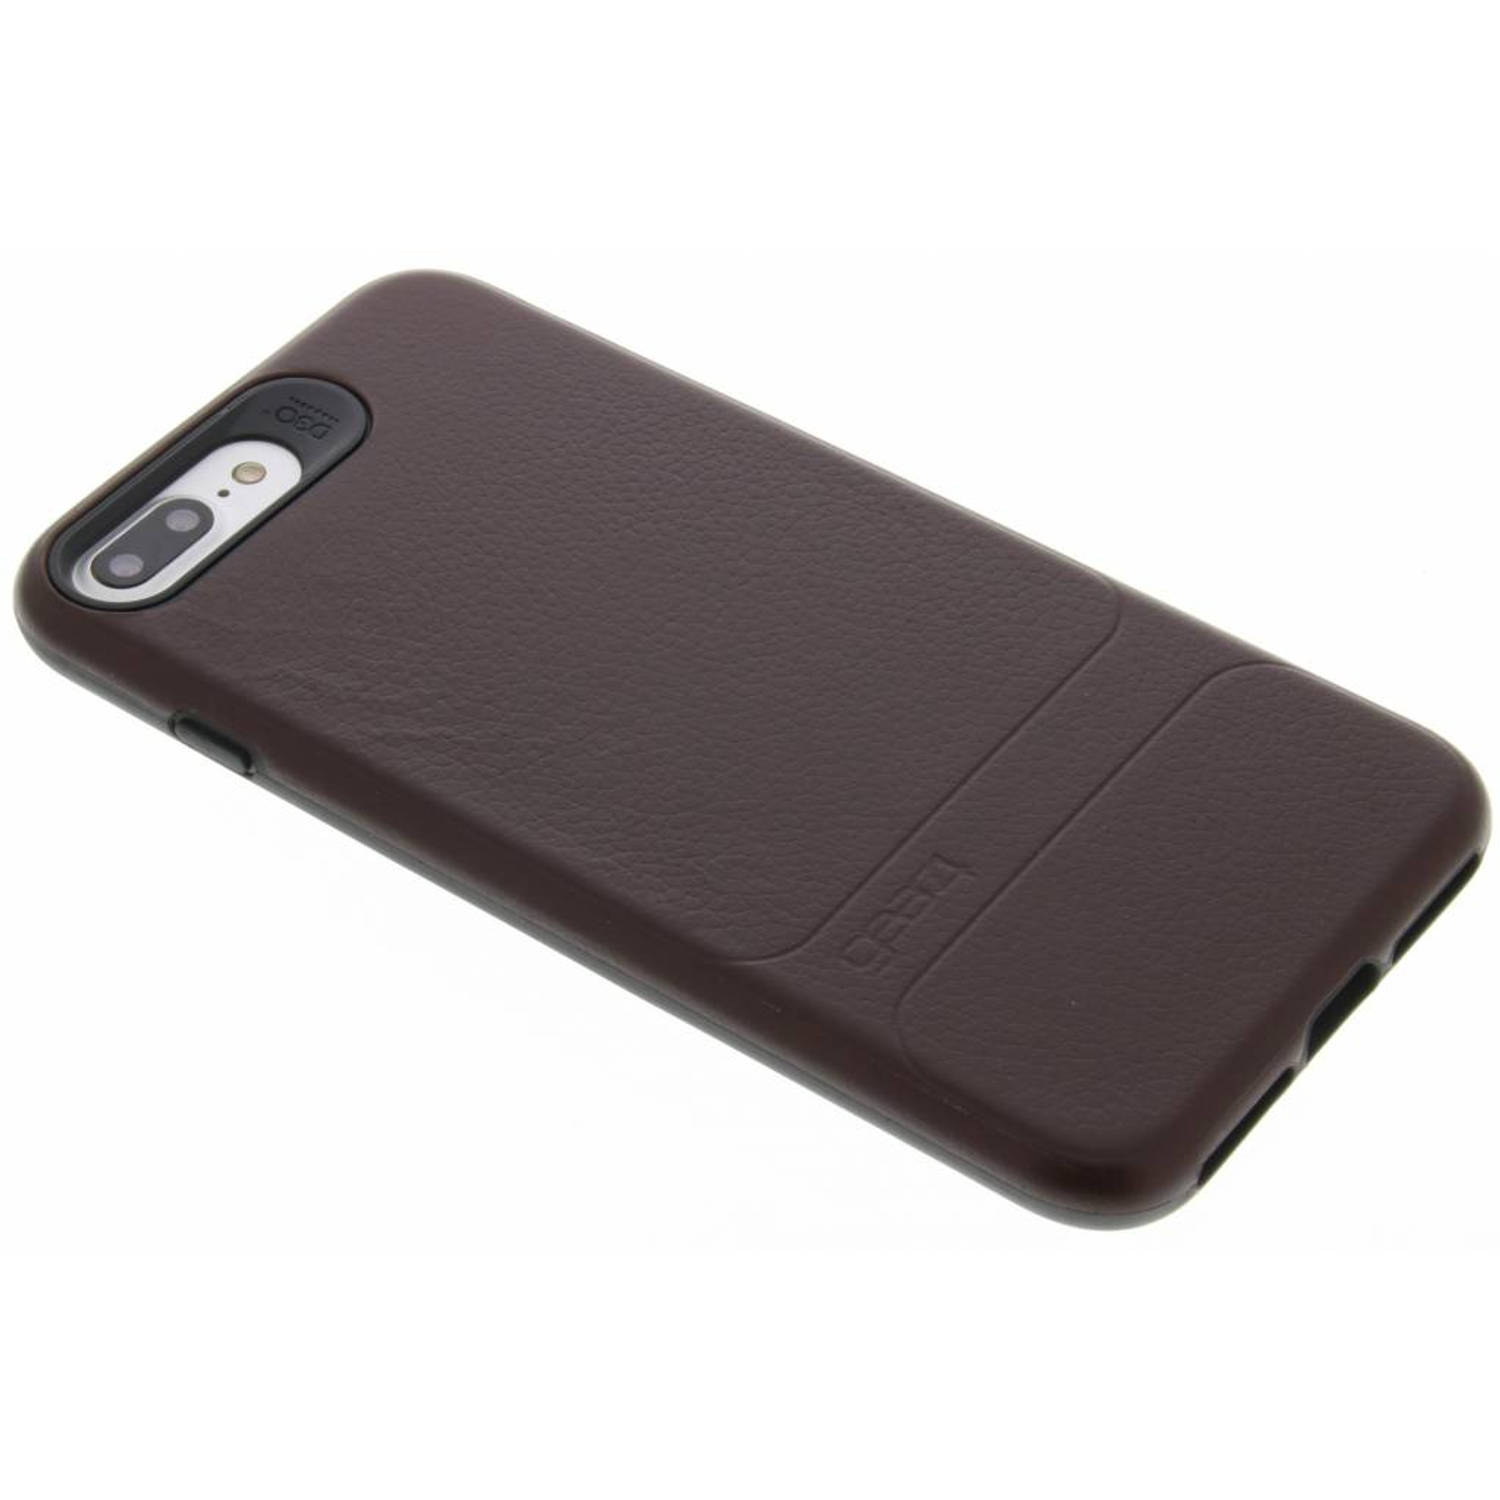 D3O Mayfair Case voor de iPhone 8 Plus / 7 Plus - Bruin